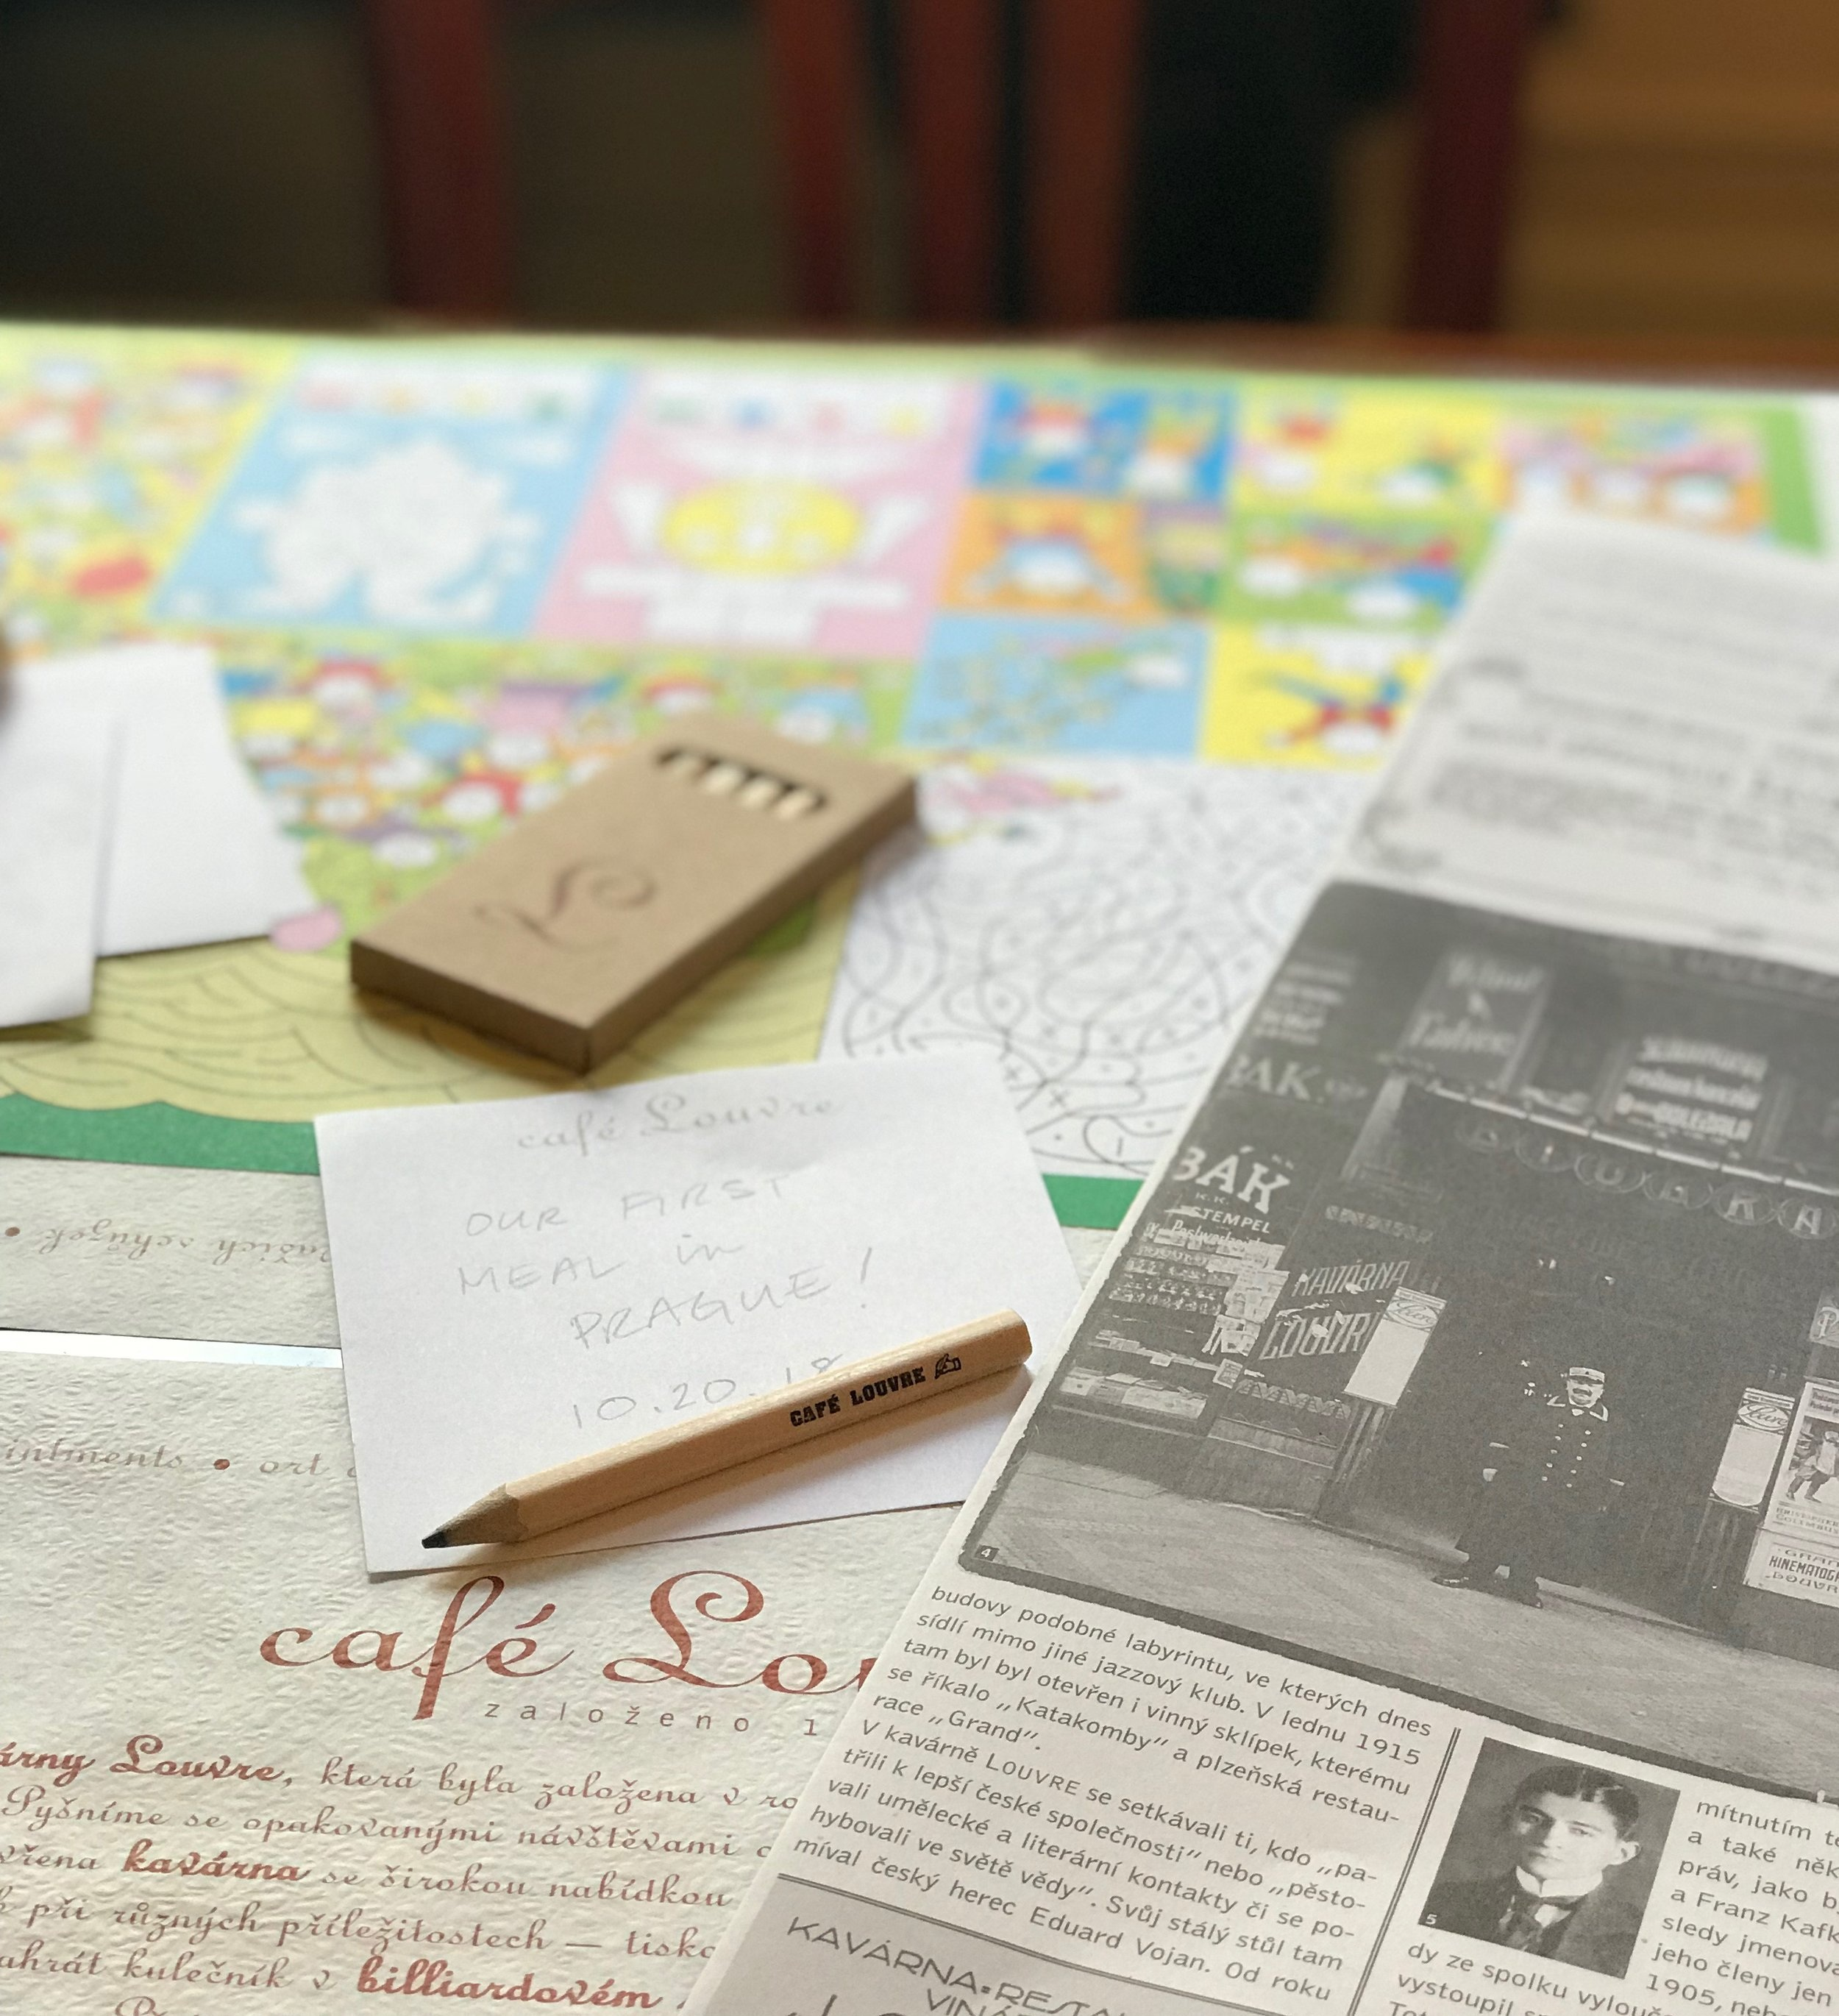 Very kid friendly with crayons and activity sheets and this fun vintage style newspaper about the cafe's history.